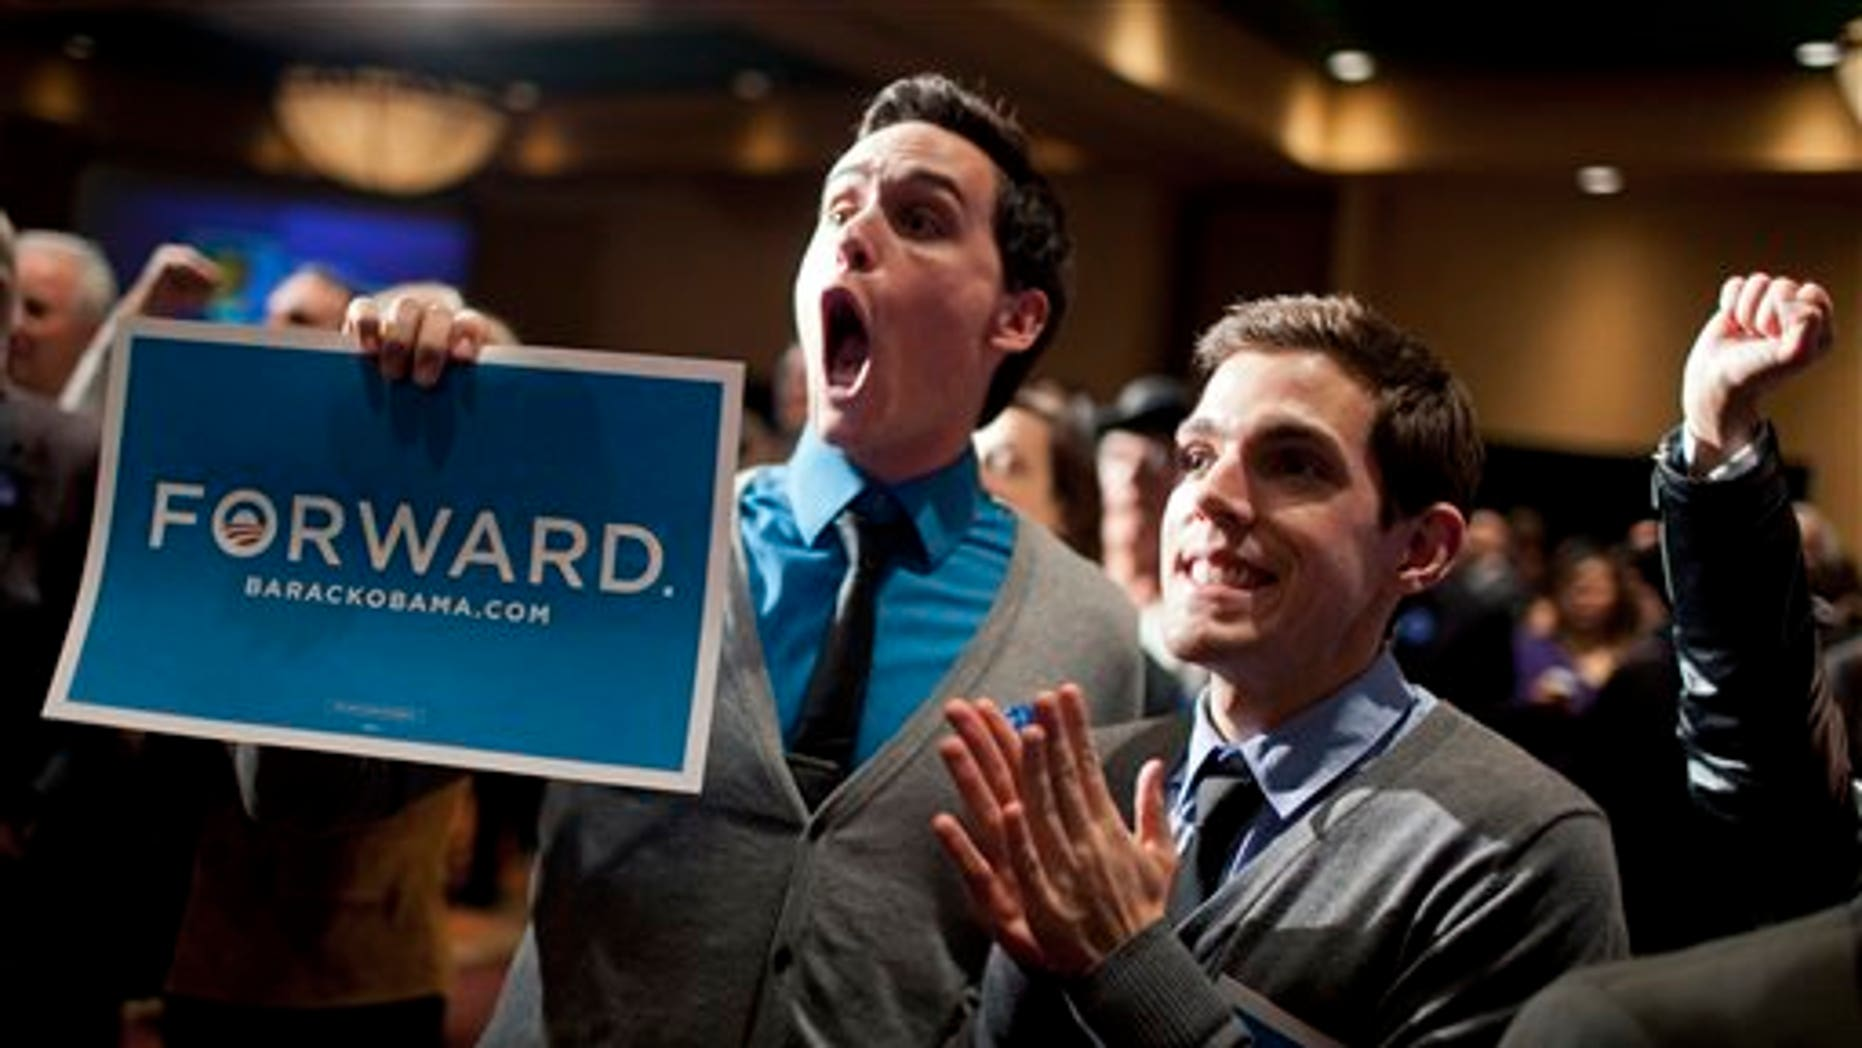 Nov. 6, 2012: New Mexico democrats including Clint Milhollin, left, and his boyfriend Will Toledo, celebrate at the Embassy Suites.